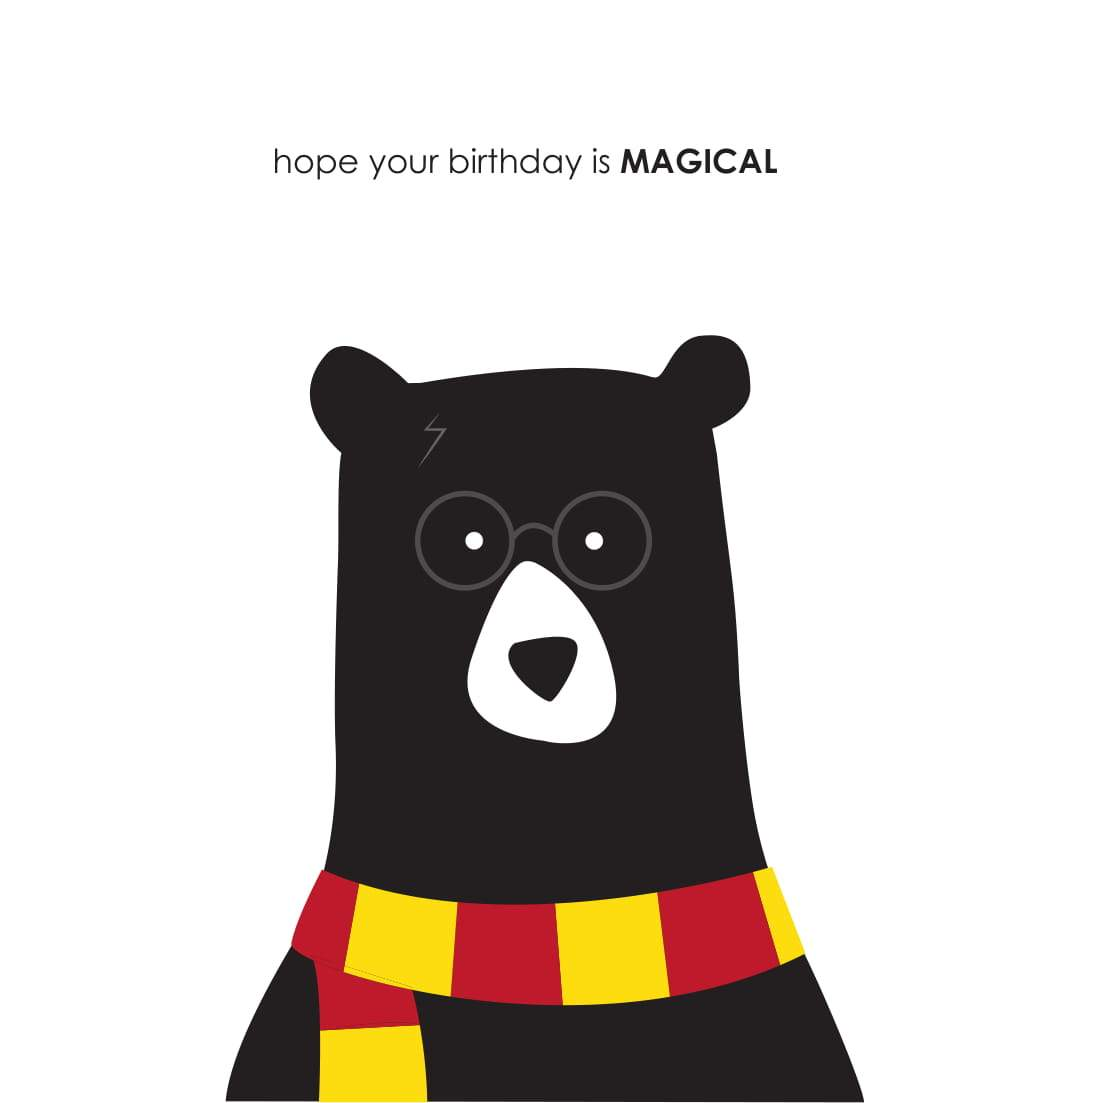 Heather Alstead Design Magical Birthday Card